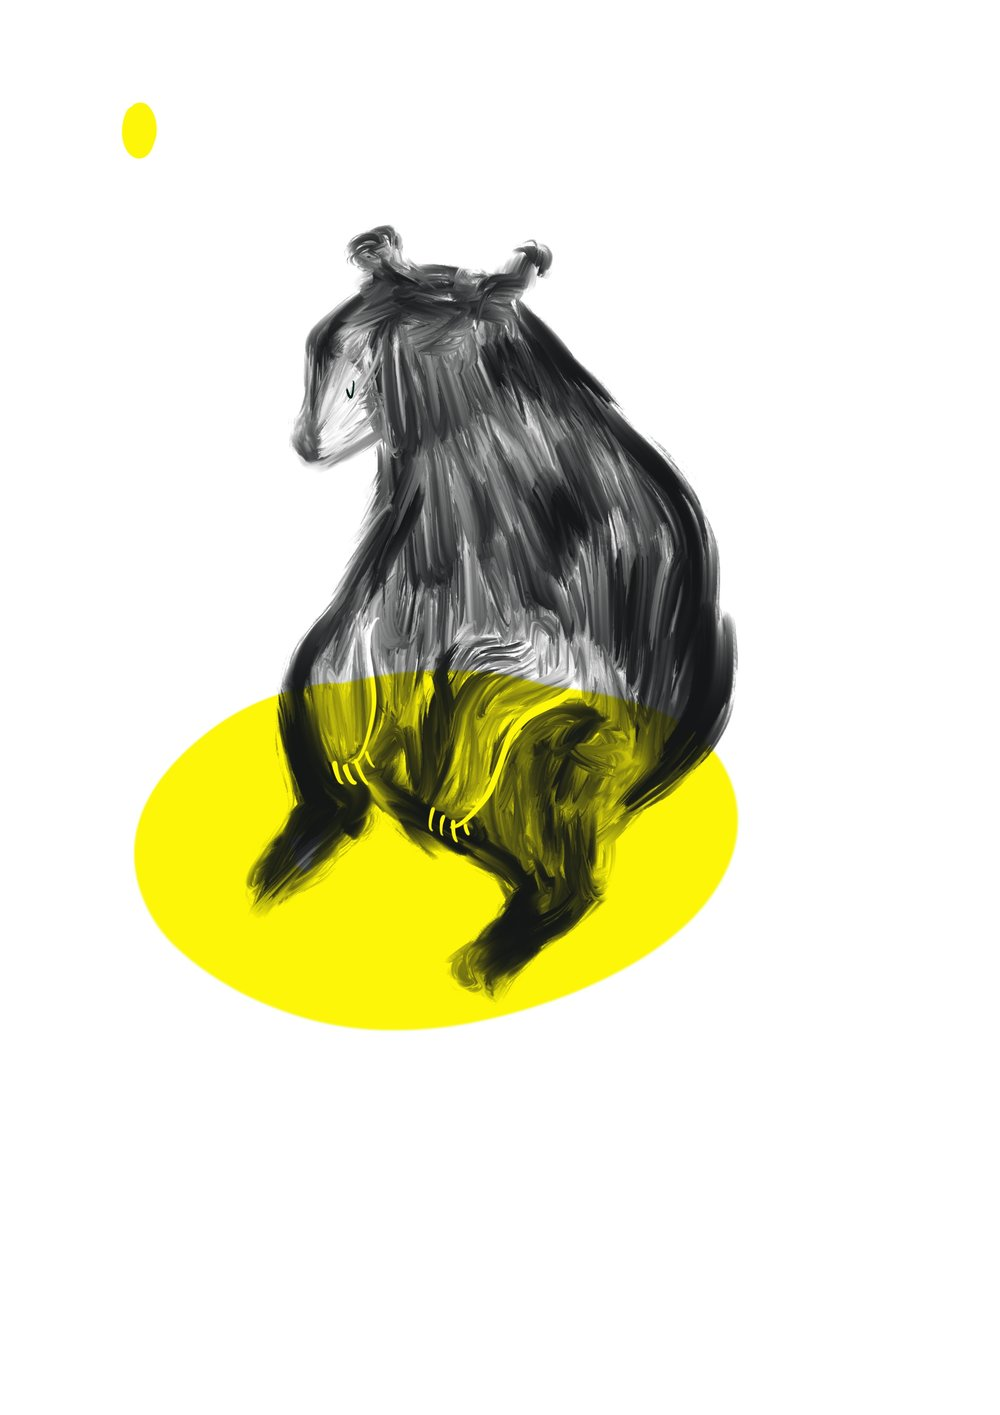 Grizzly Bear Foundation   Merlin is embarking on a new project in 2018,providing visuals to support current campaigns around grizzly bears cultural importance. Looking to educate the public about these wonderful creatures and their significant ecological role;transferring marine nutrients from coasts to inland forests and ensuring healthy and diverse plant life.